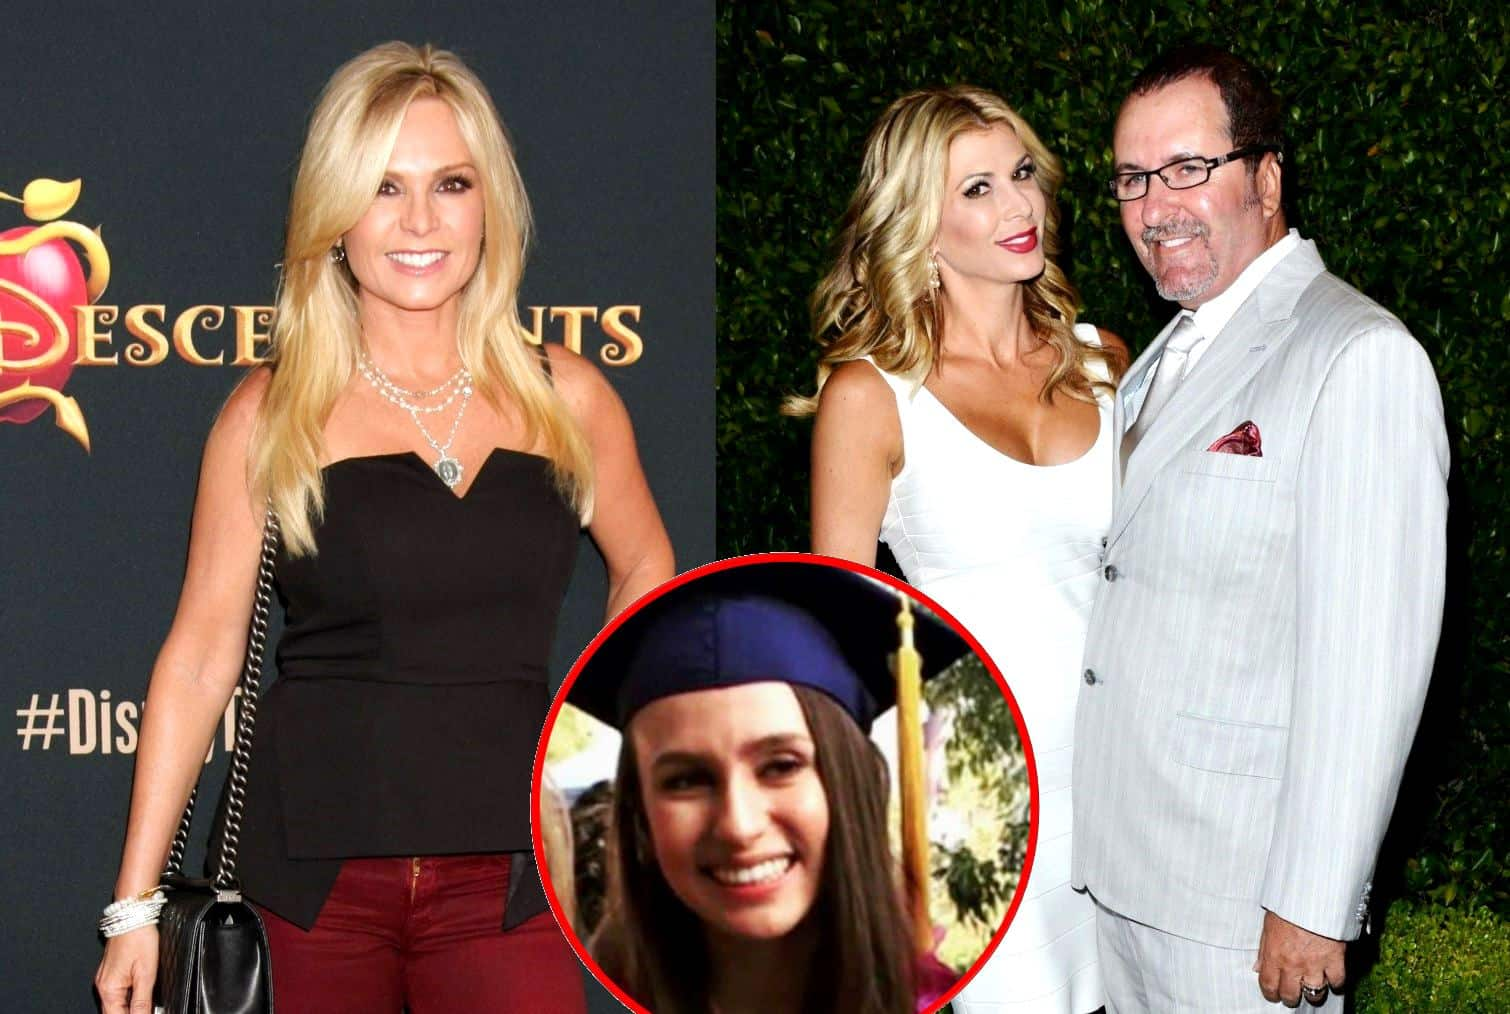 RHOC Jim Bellino vs Tamra Judge lawsuit plus Sidney Barney